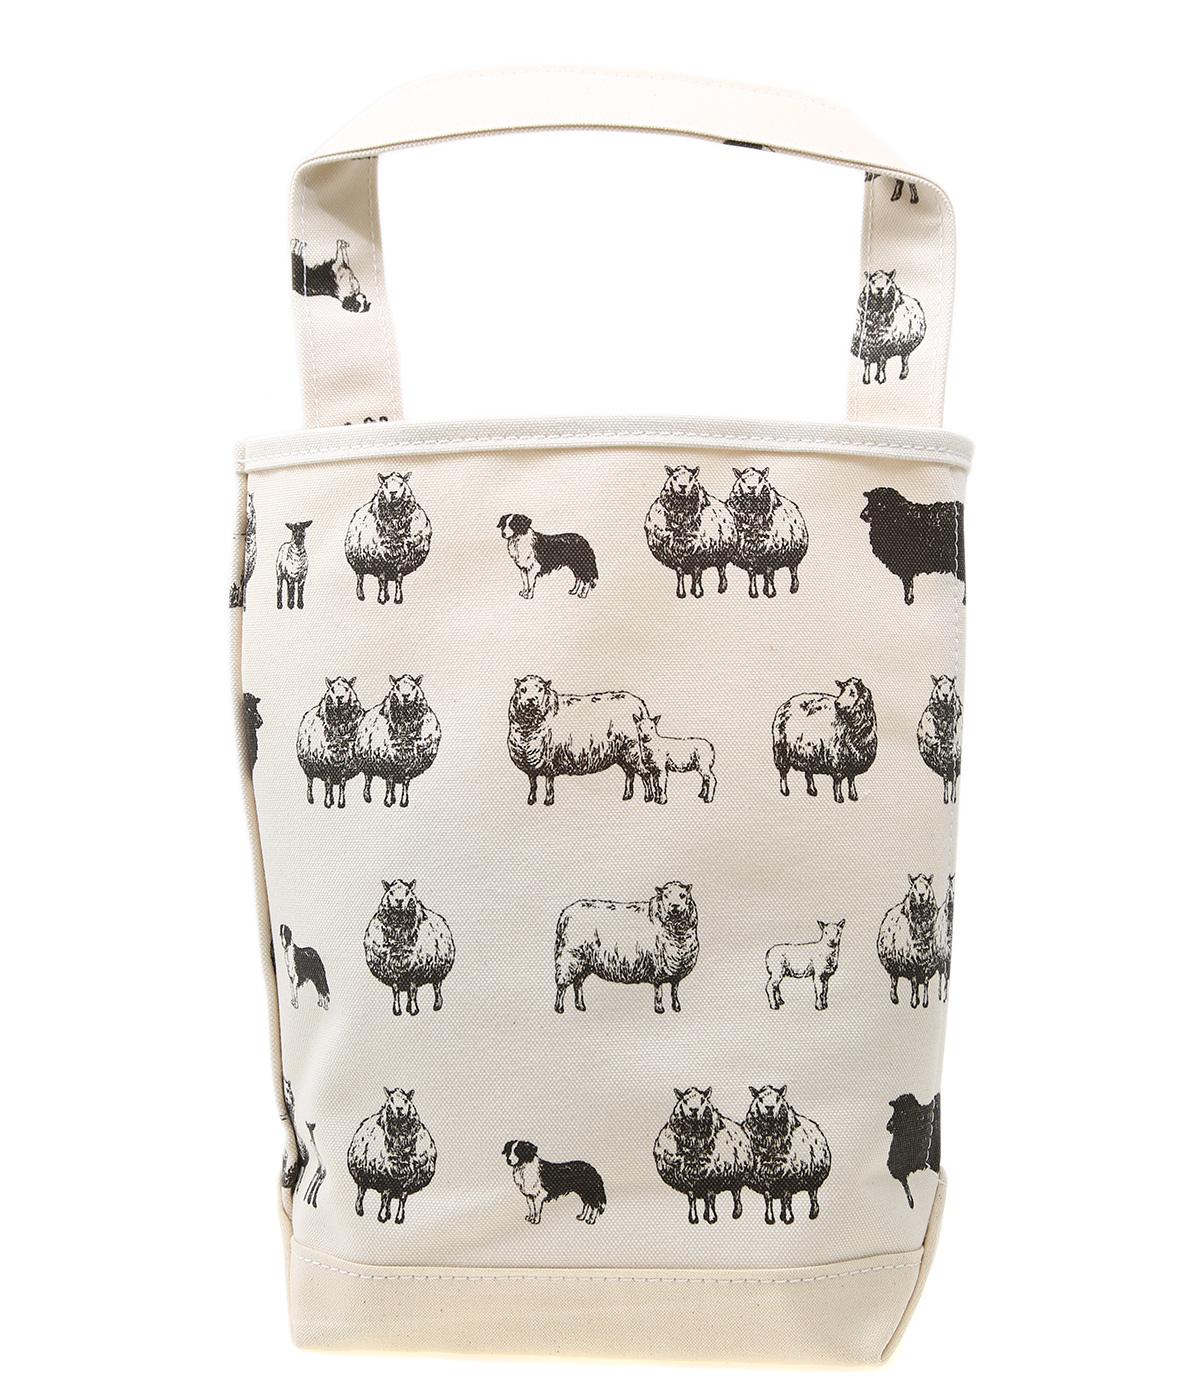 BAGUETTE TOTE SMALL PRINT -SHEEP(羊)-